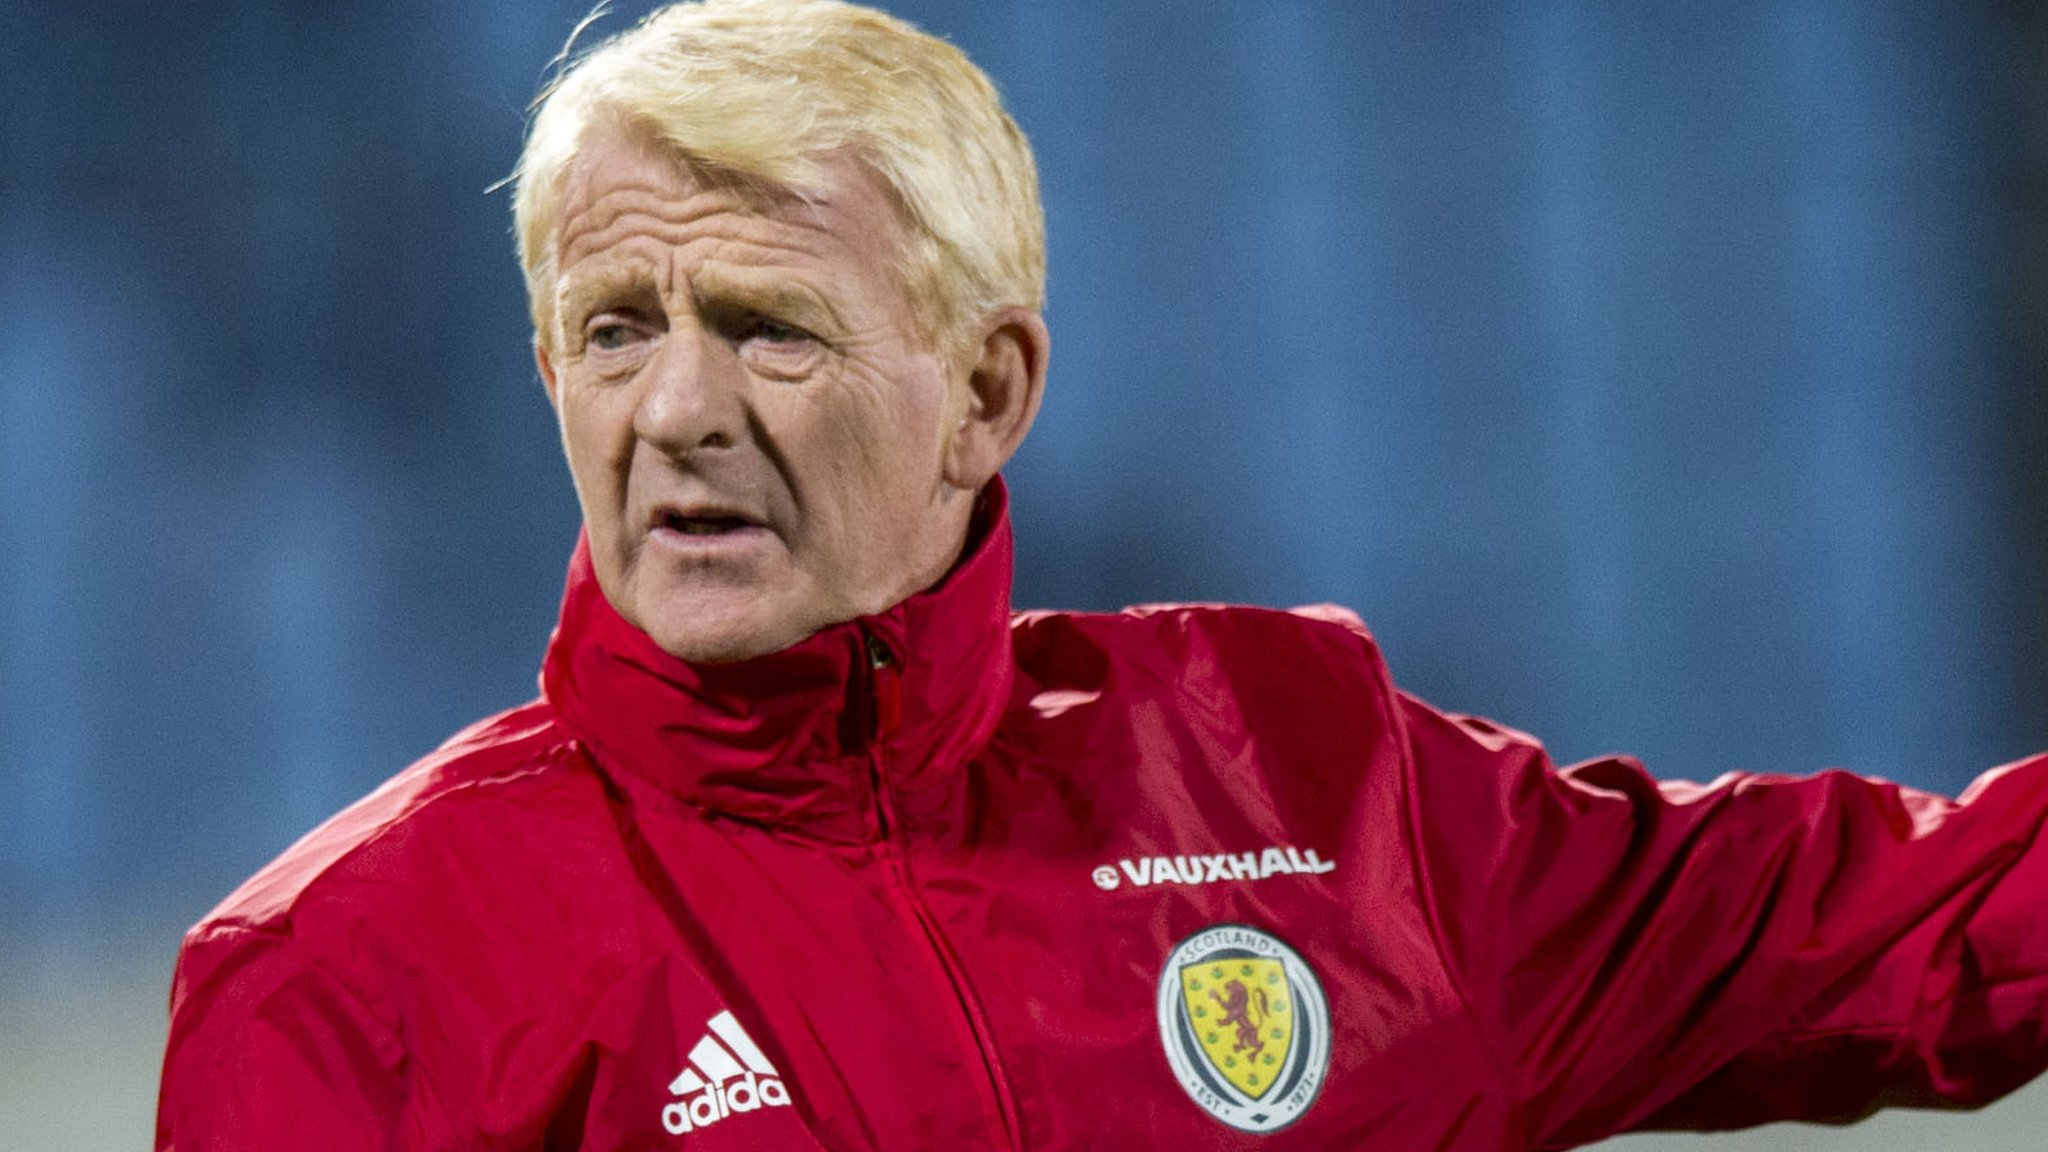 Gordon Strachan: Should Scotland manager stay or go?